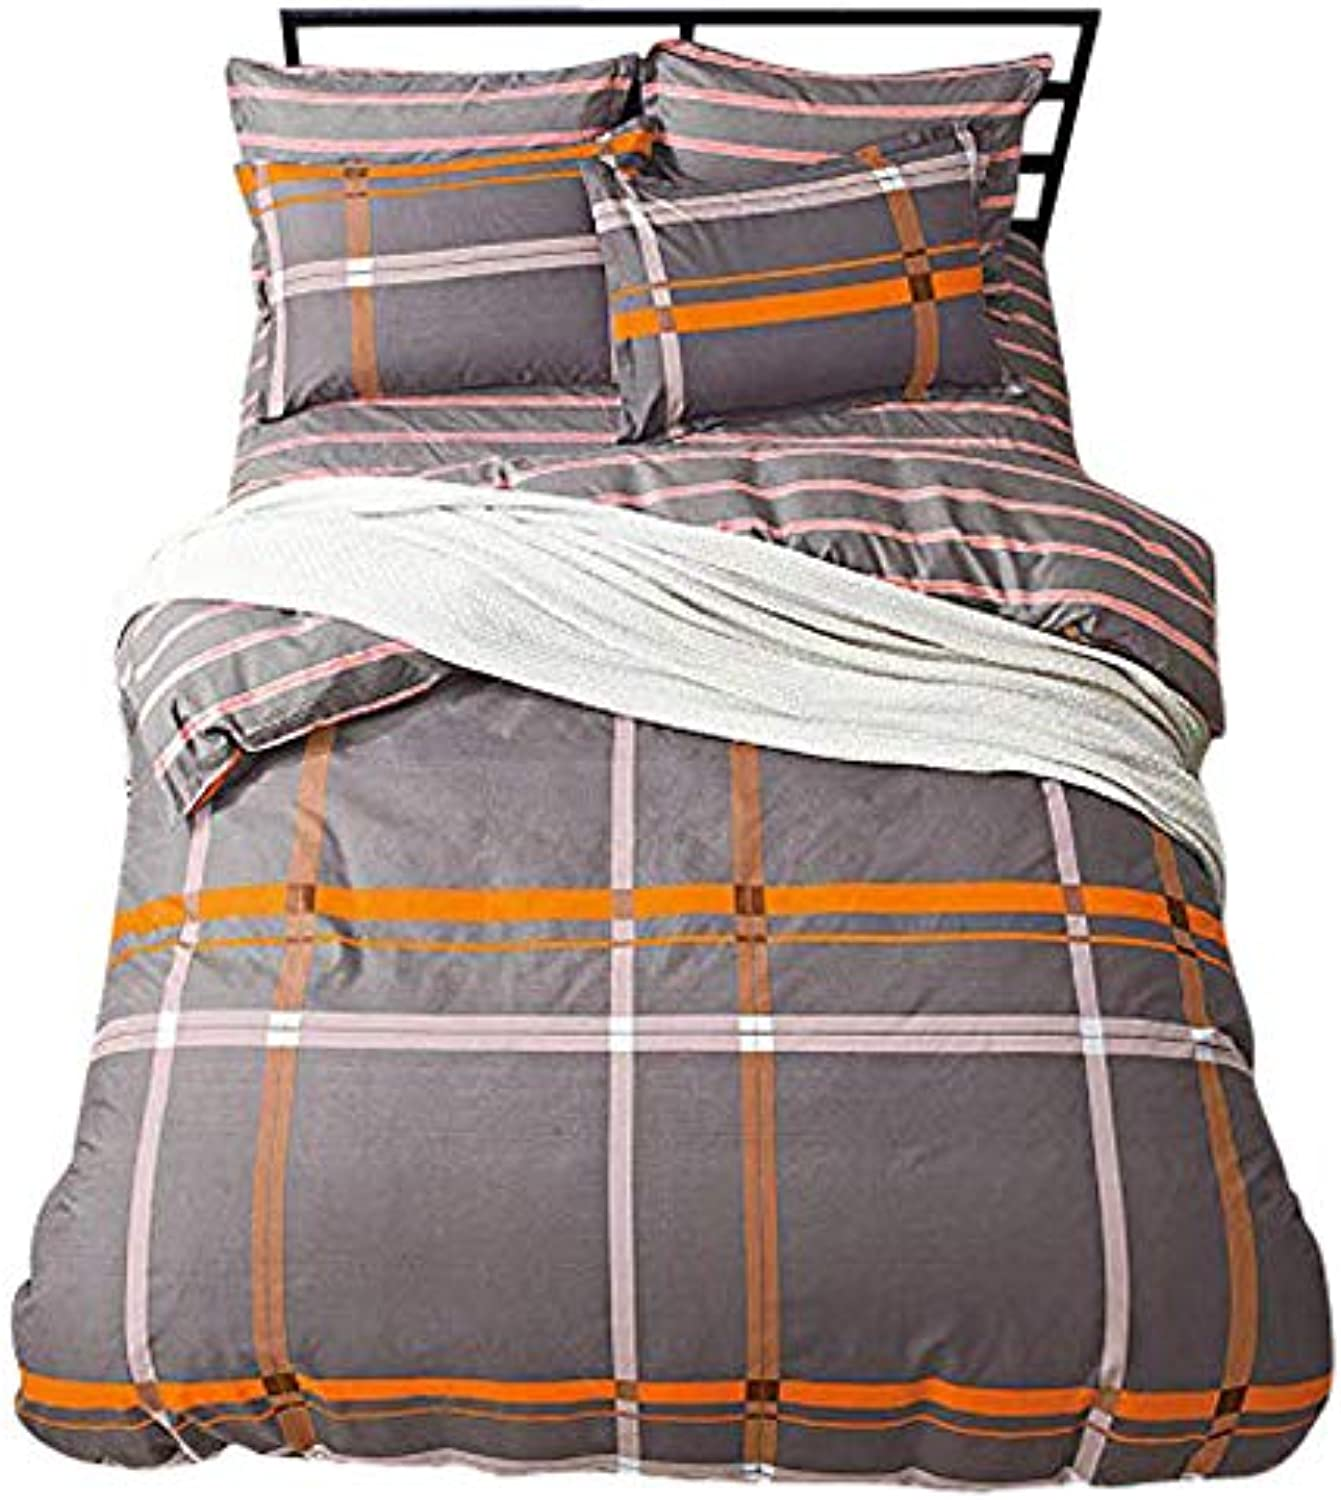 KFZ Bed Set Bedingset Duvet Cover Flat Sheet Pillowcase No Comforter Twin Full Queen Sheets Set MF Stripe Lattice Checker Plaid Design for Kids Teens Bed (Stripe East, Grey, Queen 78 x91 )